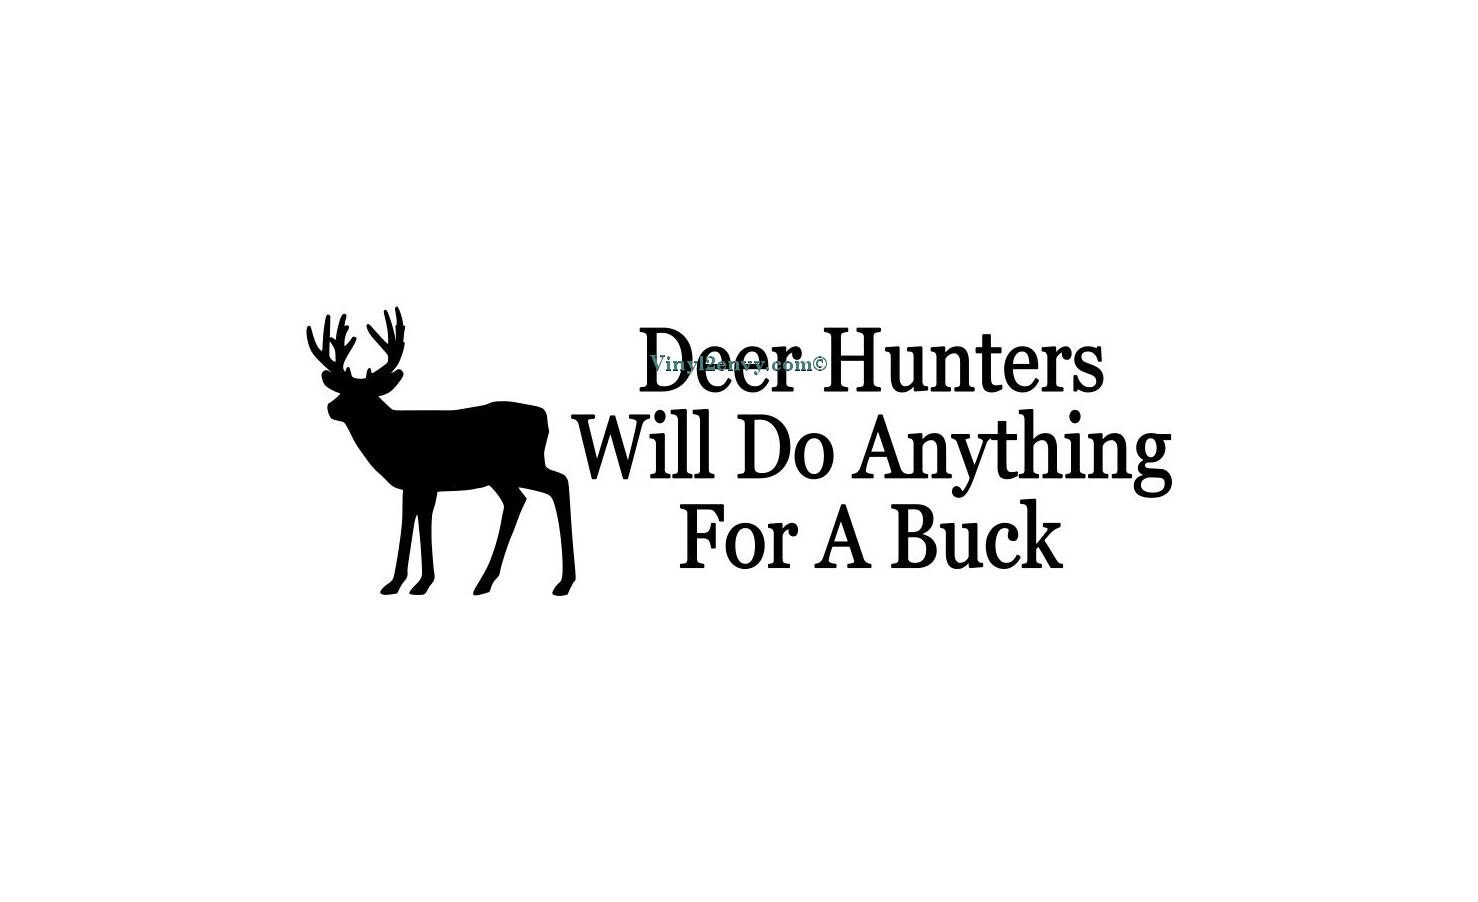 Deer Hunters Will Do Anything For A Buck Car Decal Vinyl